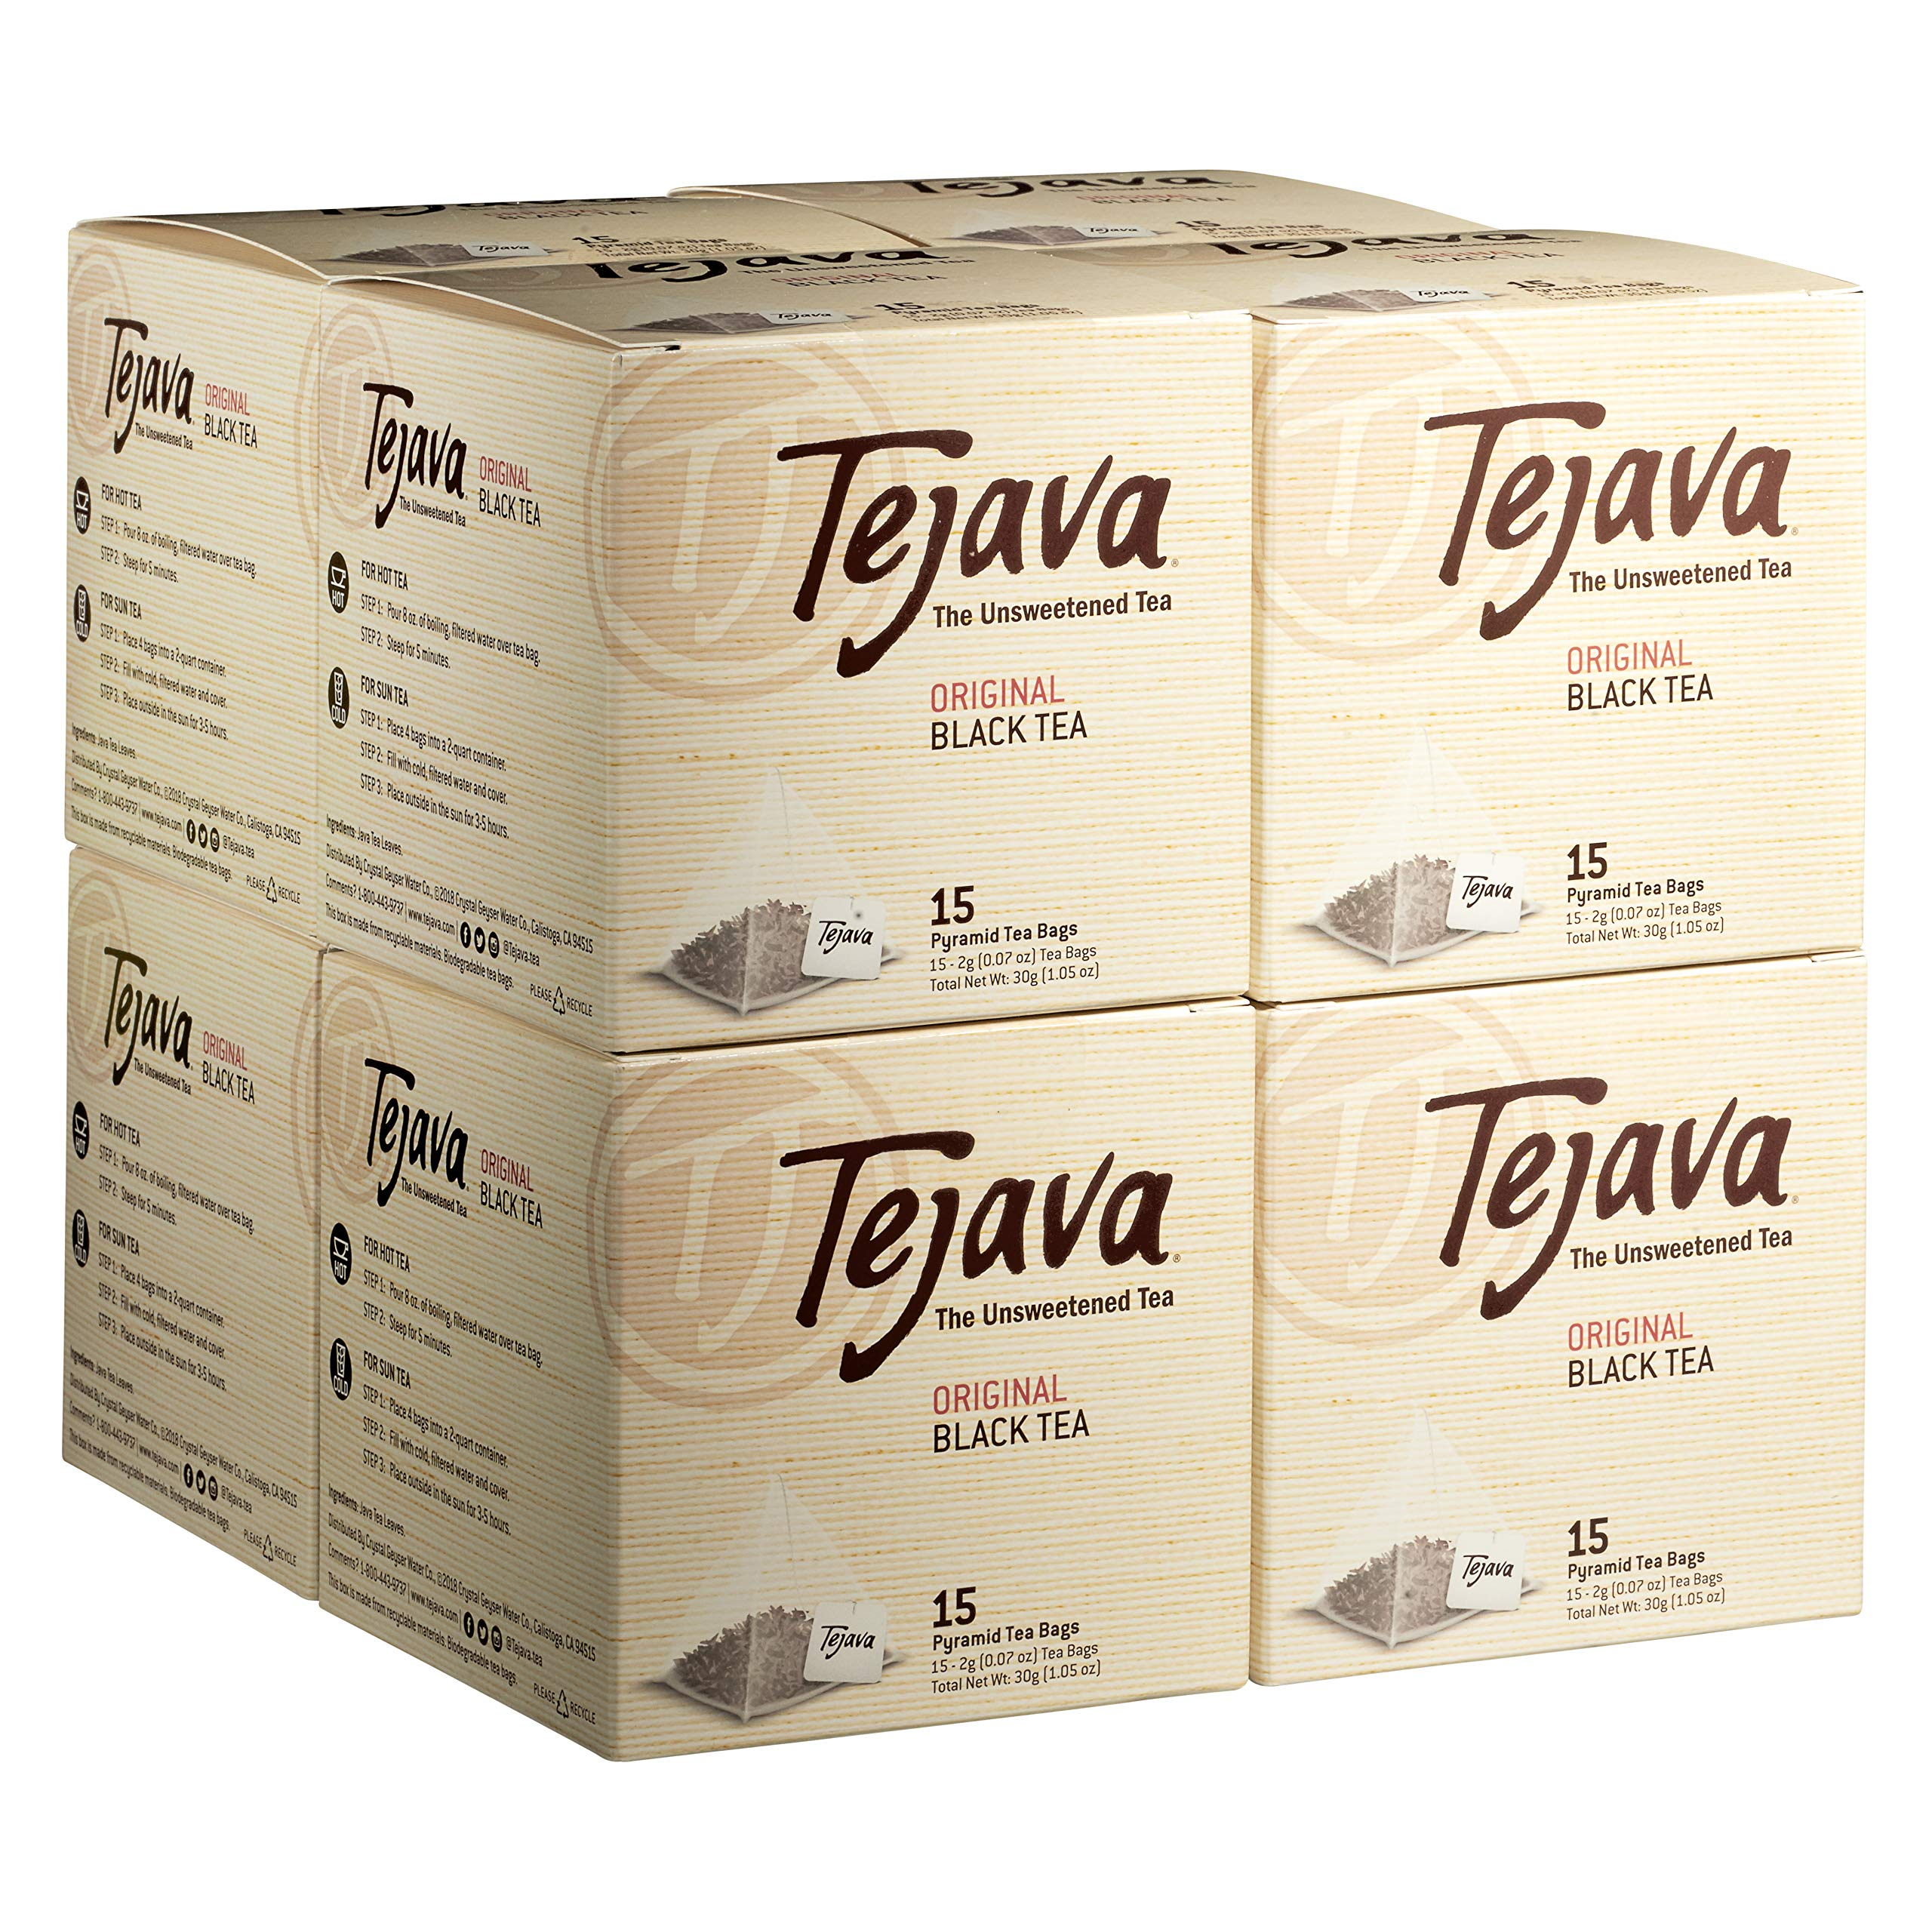 Tejava Original Black Tea Bags, Case of 8 Boxes, 15 Tea Bagsper Box, Award-Winning Tea, Unsweetened, Individually Packaged Pyramid Bags, 100% Natural